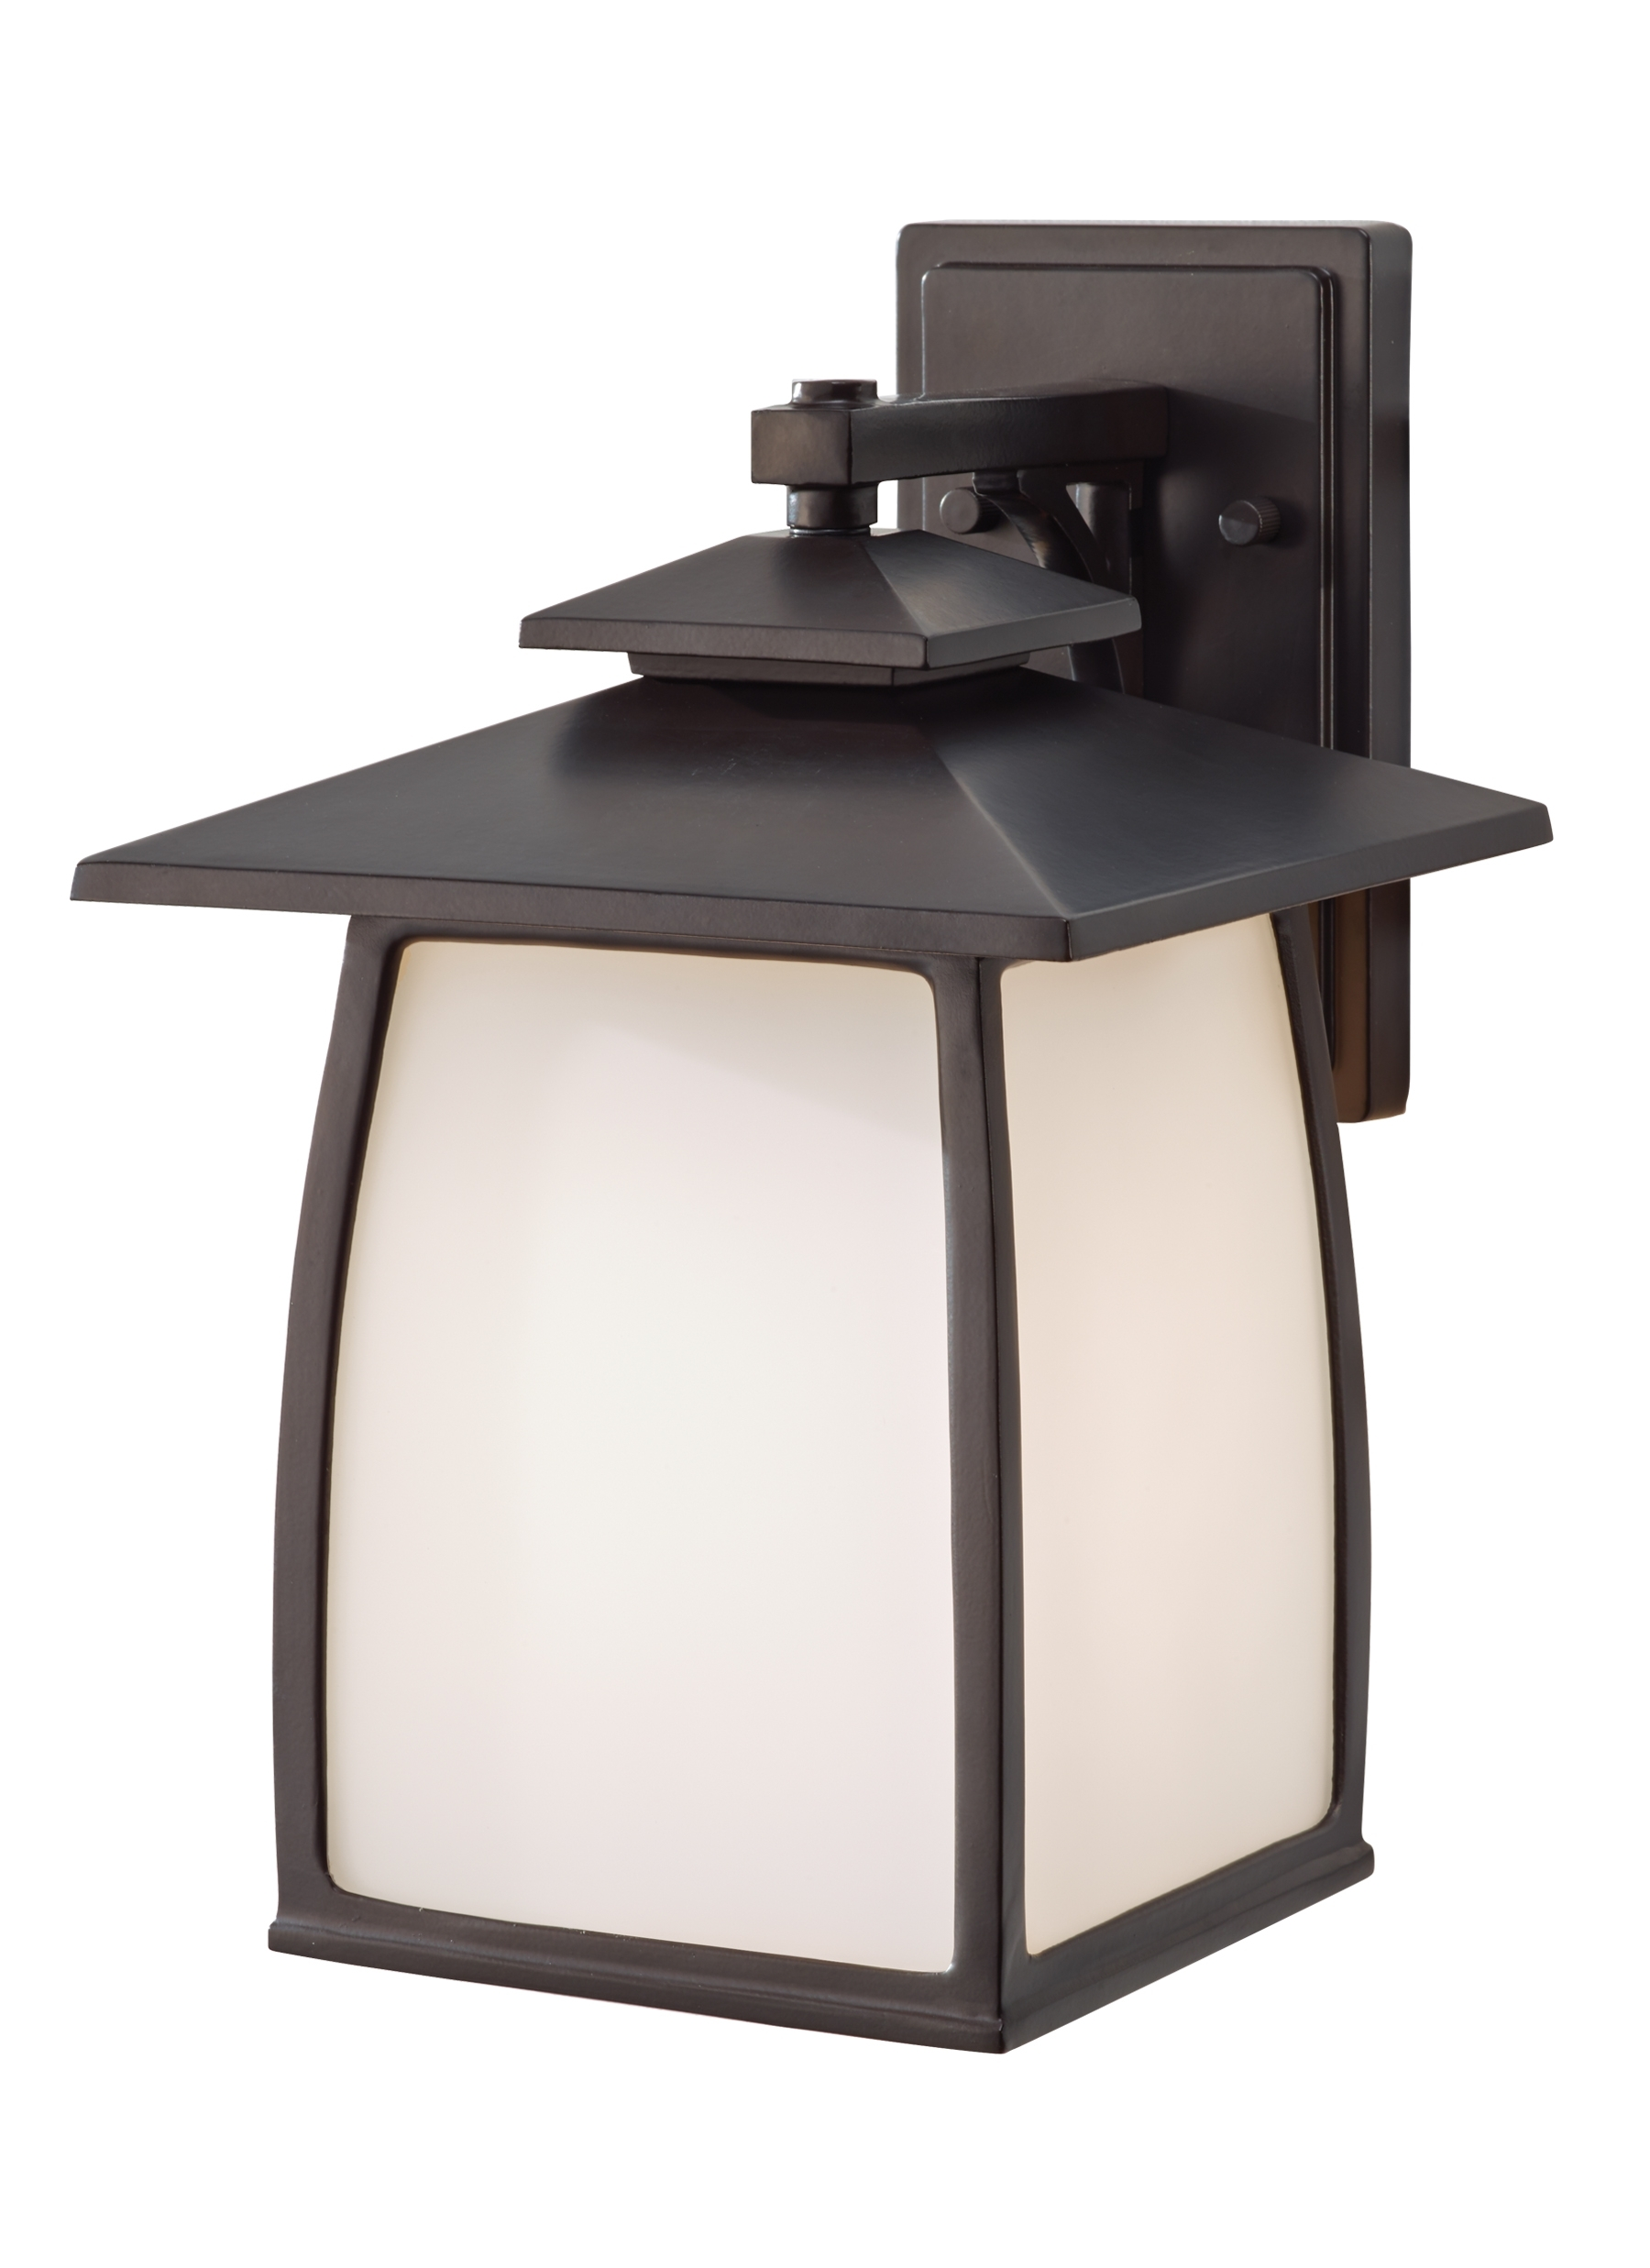 Ol8502Orb,1 - Light Outdoor Lantern,oil Rubbed Bronze throughout Outdoor Lanterns Without Glass (Image 15 of 20)